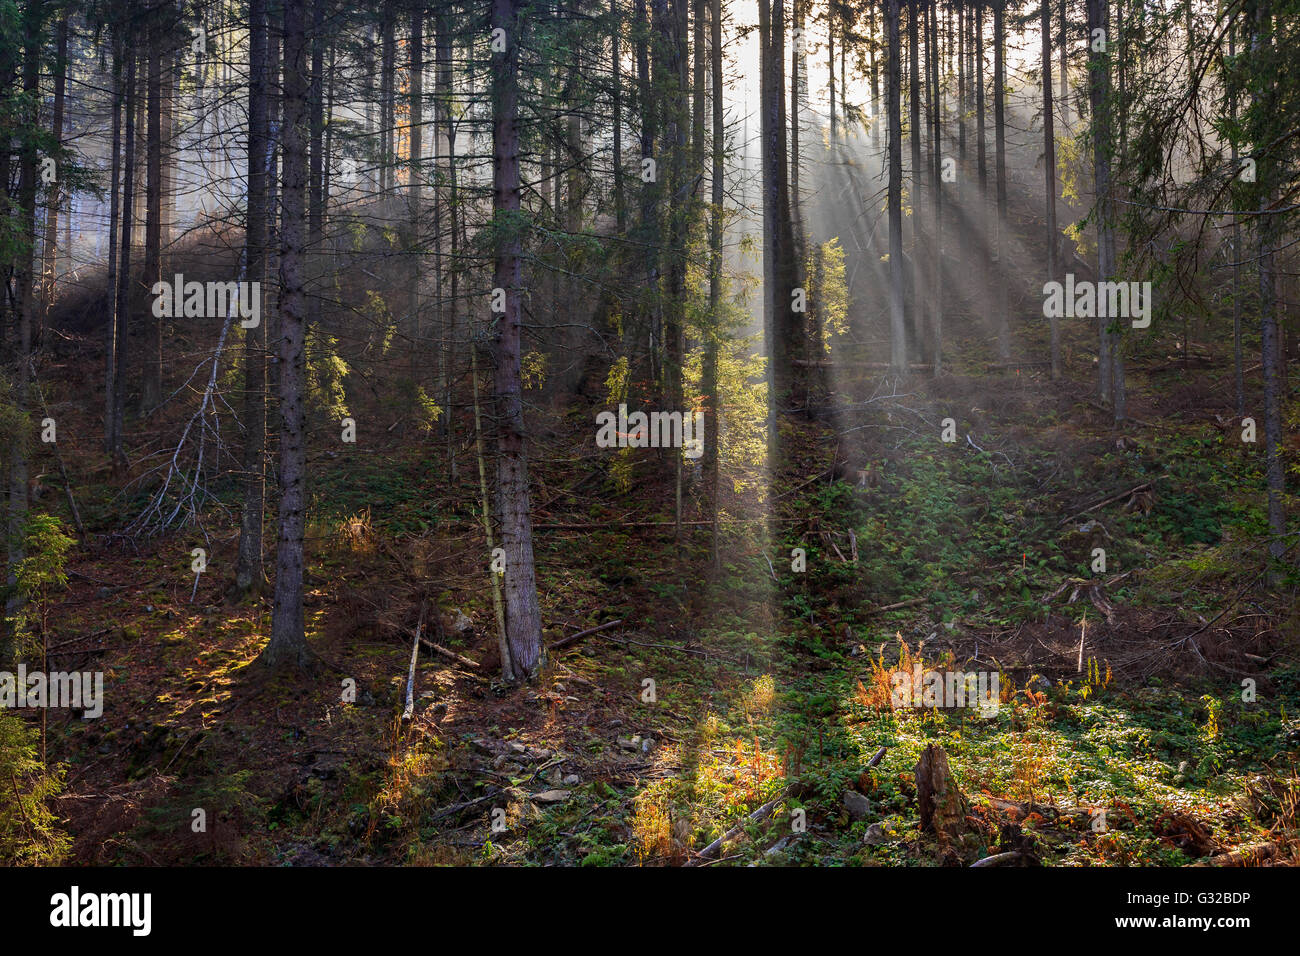 Scenery of the misty coniferous forest at the end of autumn. - Stock Image